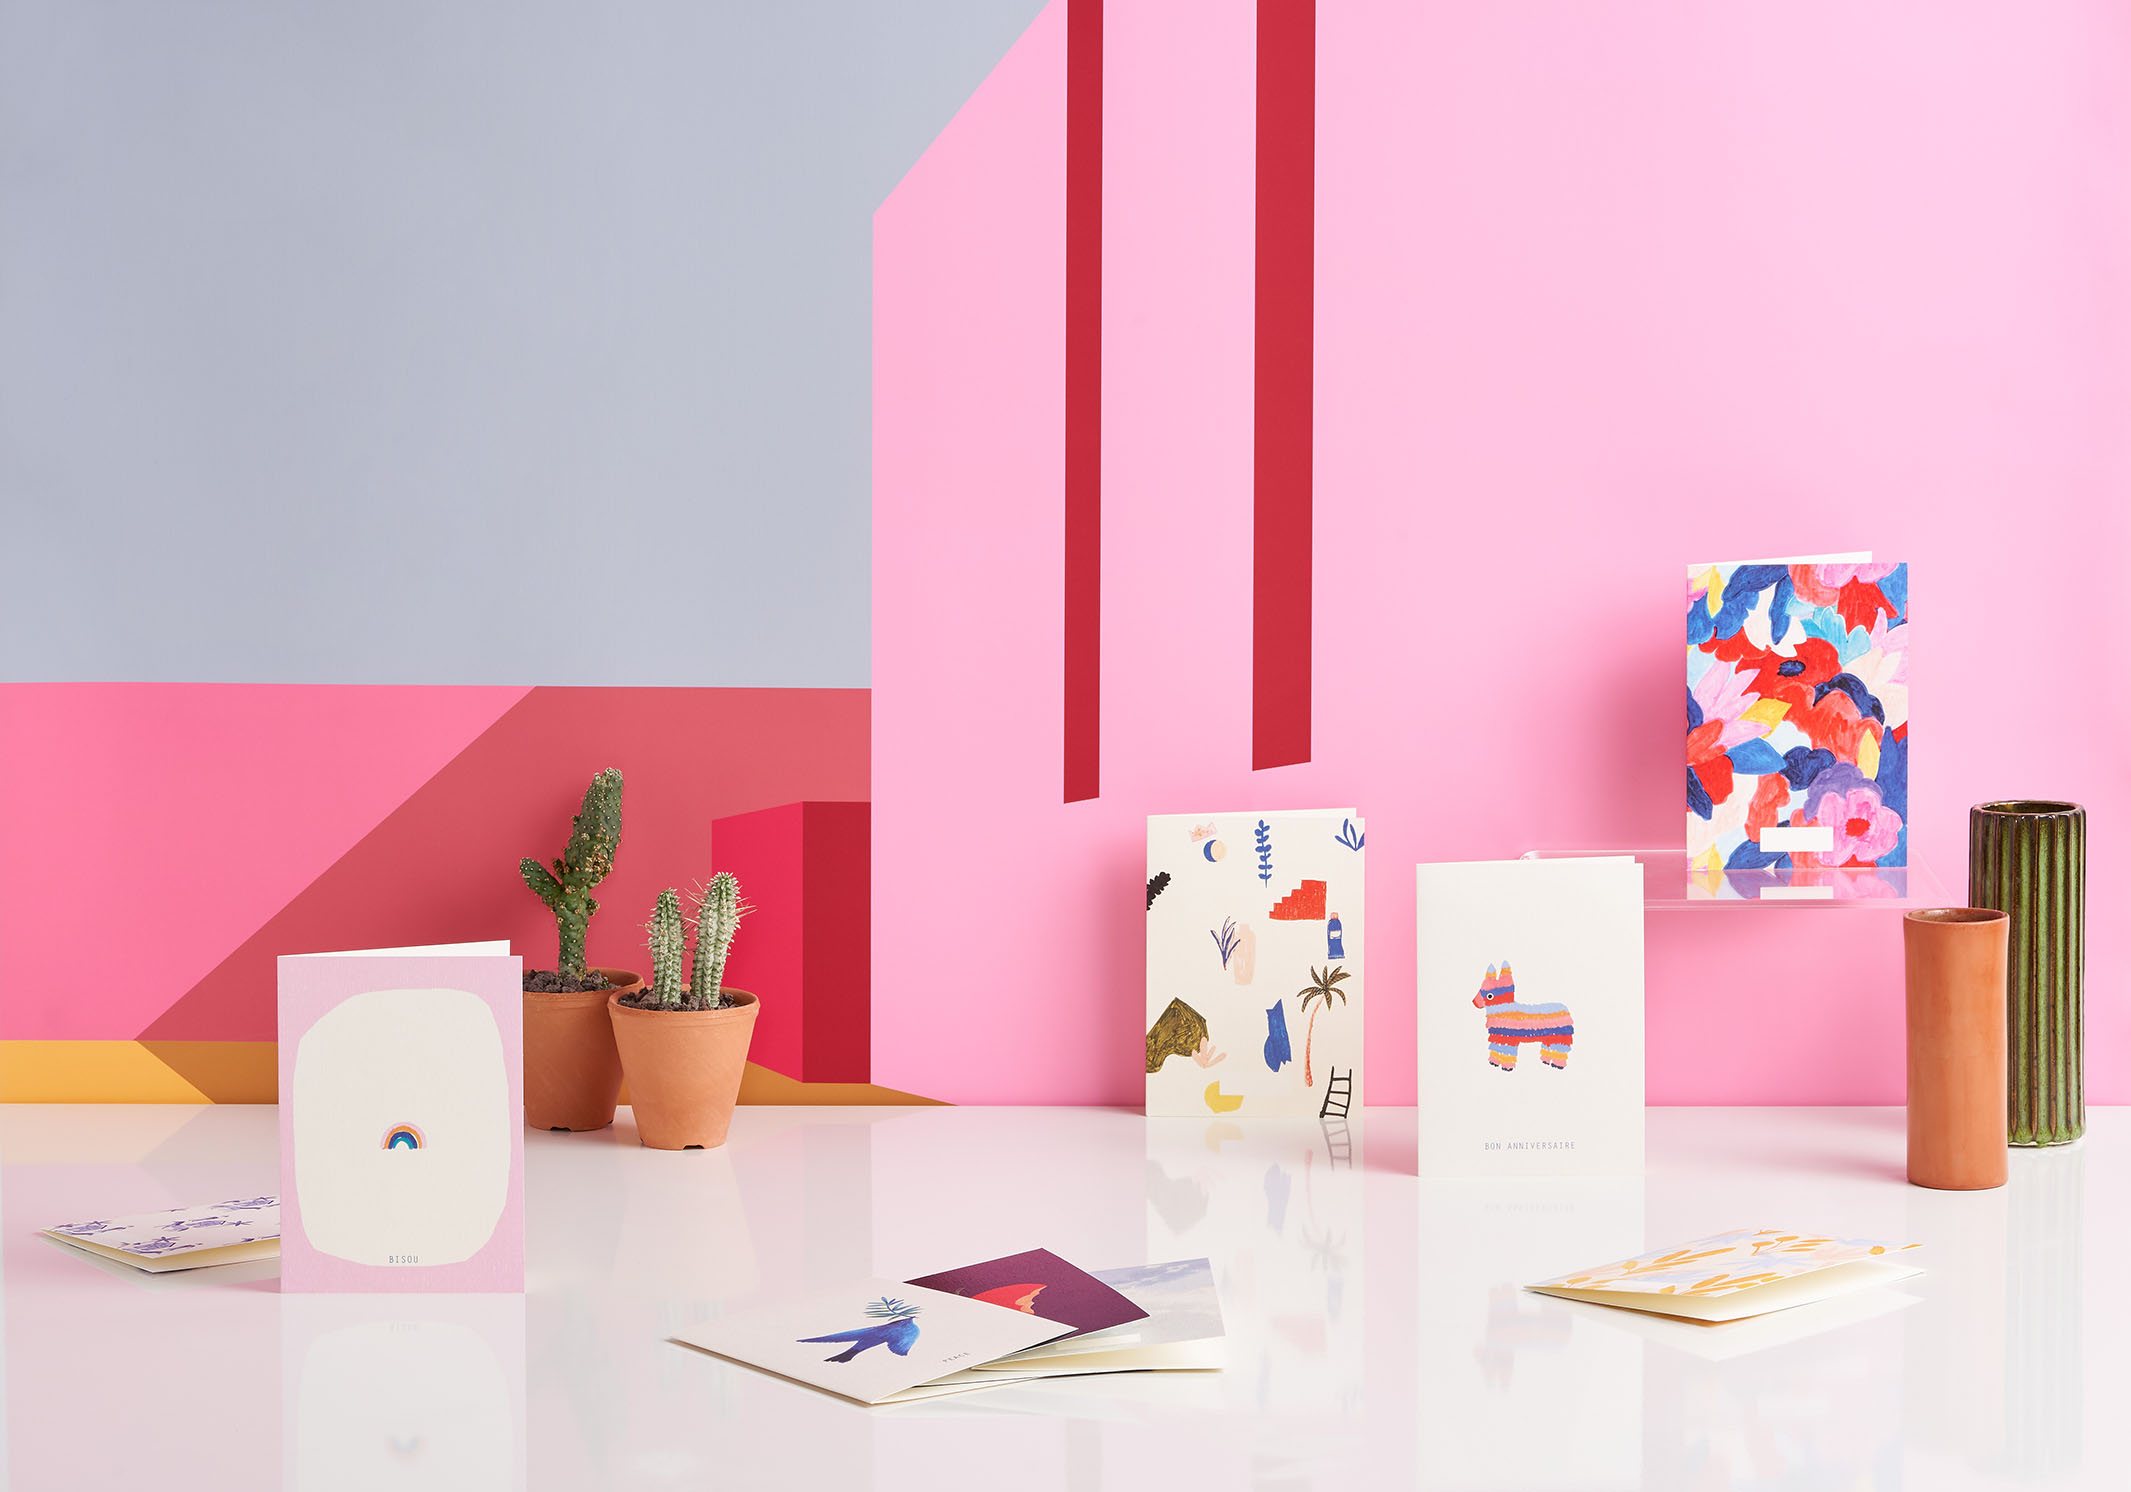 SS19-AMBIANCE-CARTES-copie